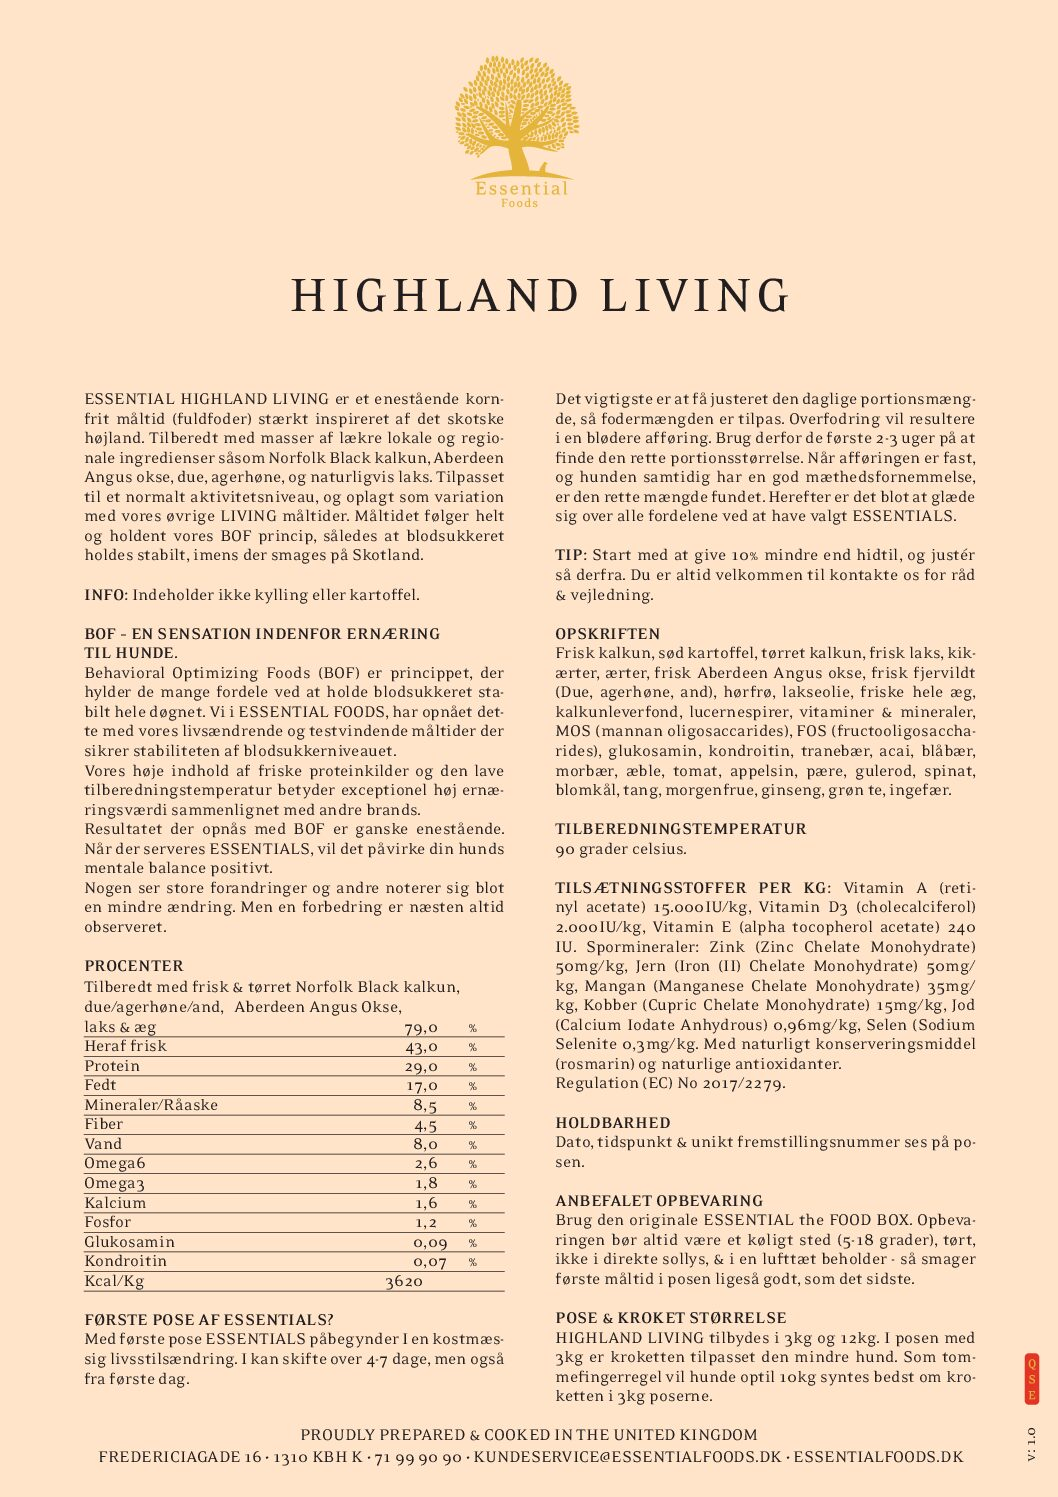 4 X 3KG SMALL SIZE ESSENTIAL HIGHLAND LIVING 1